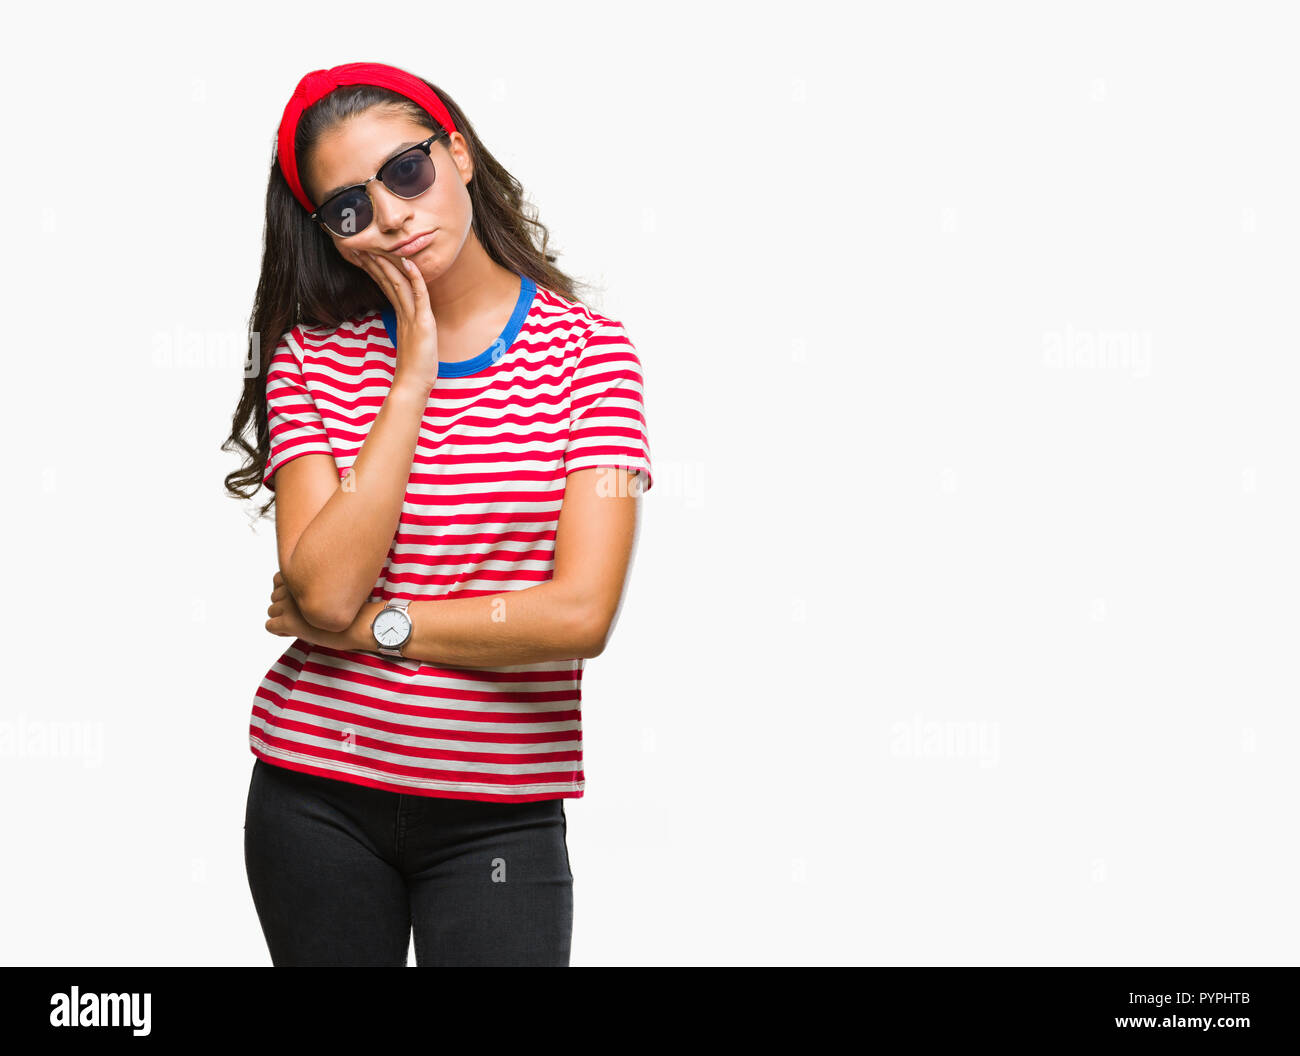 Young beautiful arab woman wearing sunglasses over isolated background thinking looking tired and bored with depression problems with crossed arms. Stock Photo